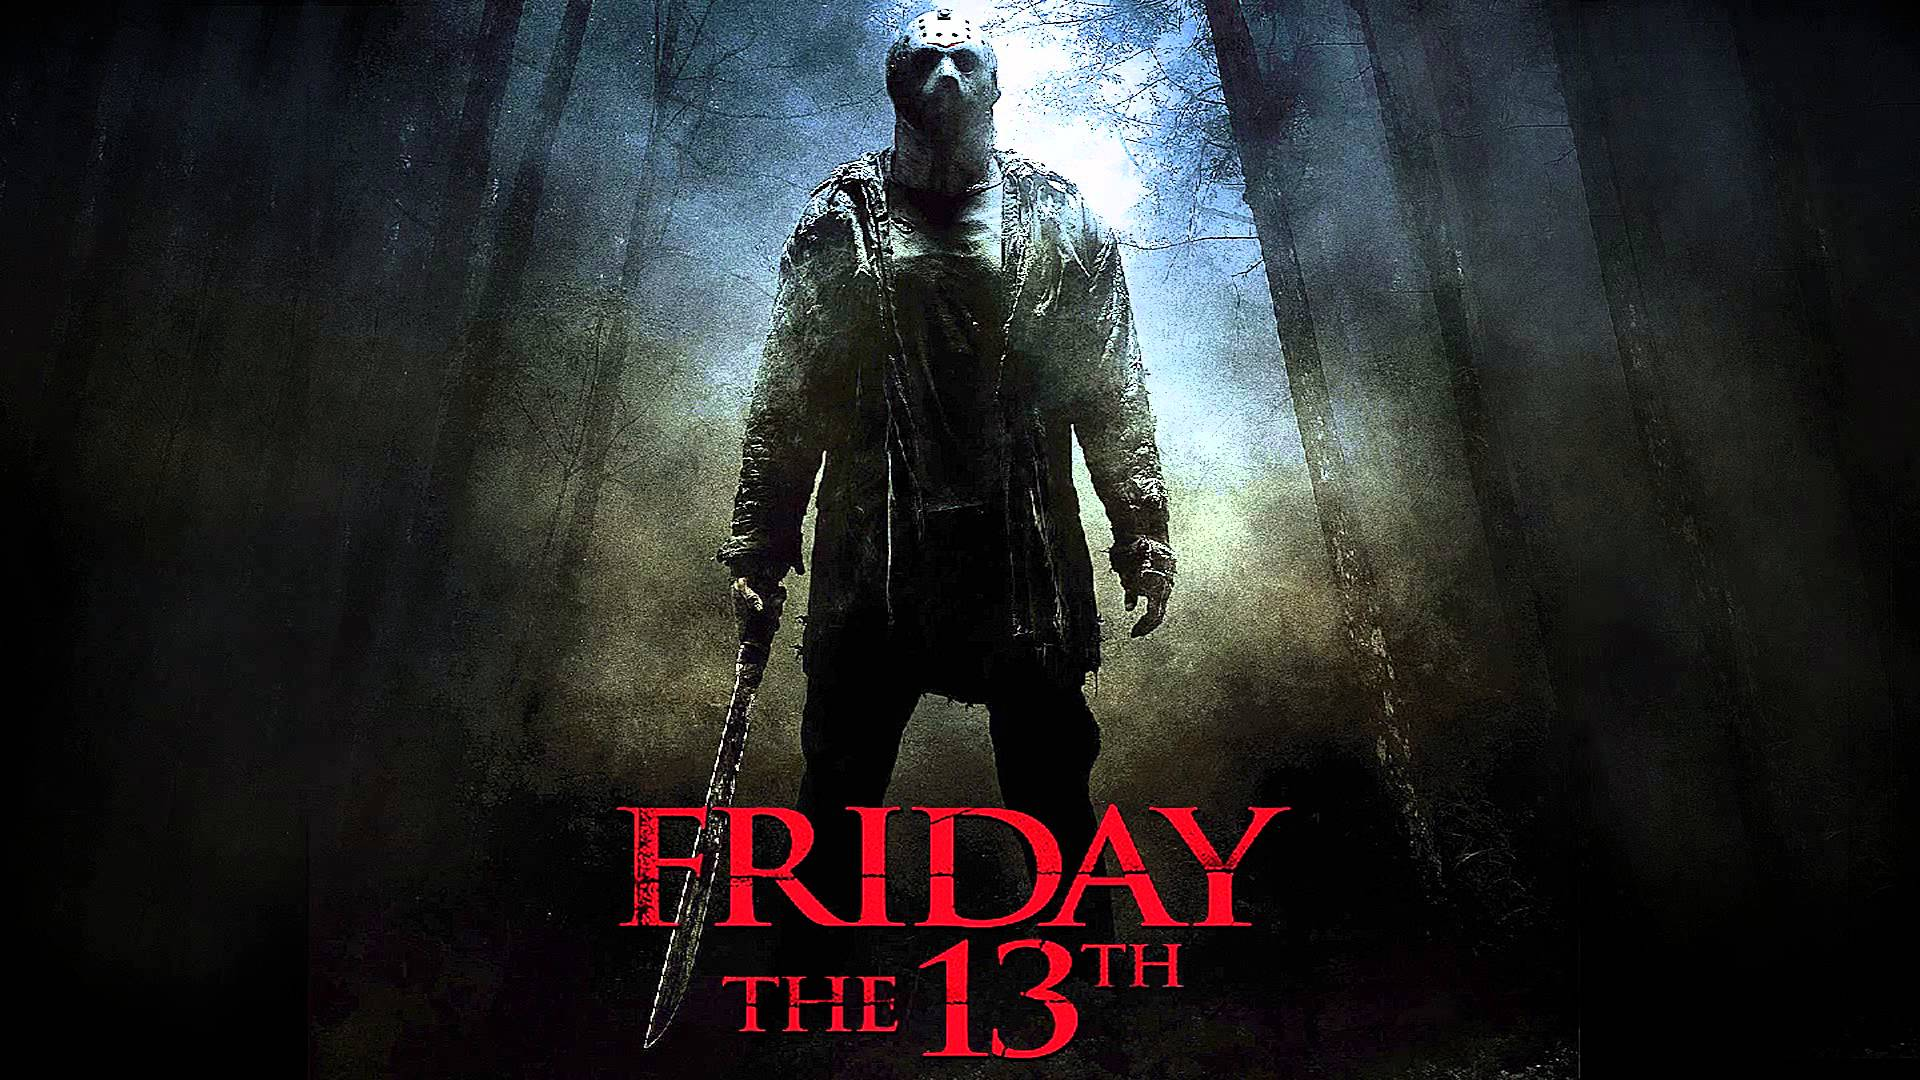 phim chiếu rạp Paramount - Friday the 13th - elle vietnam